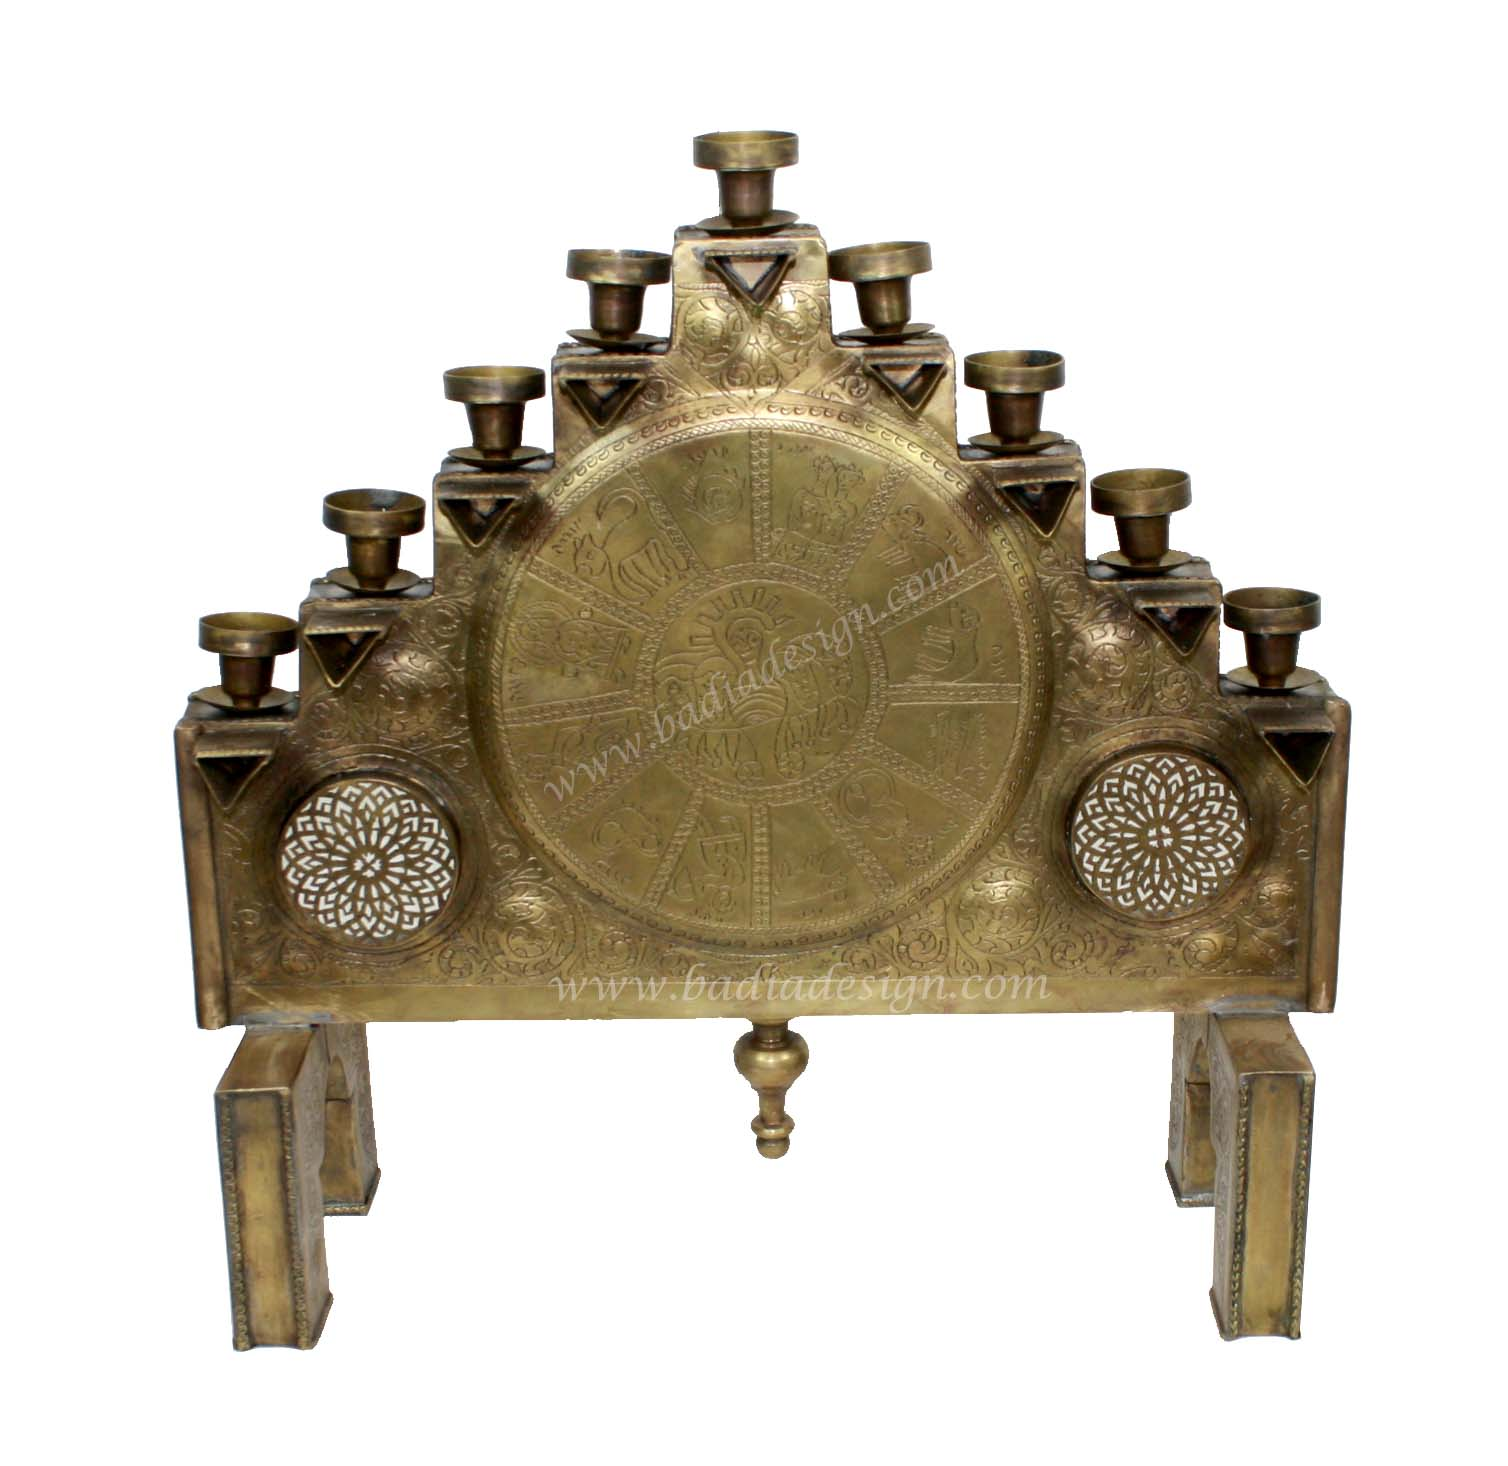 Morocca Brass Candle Holder